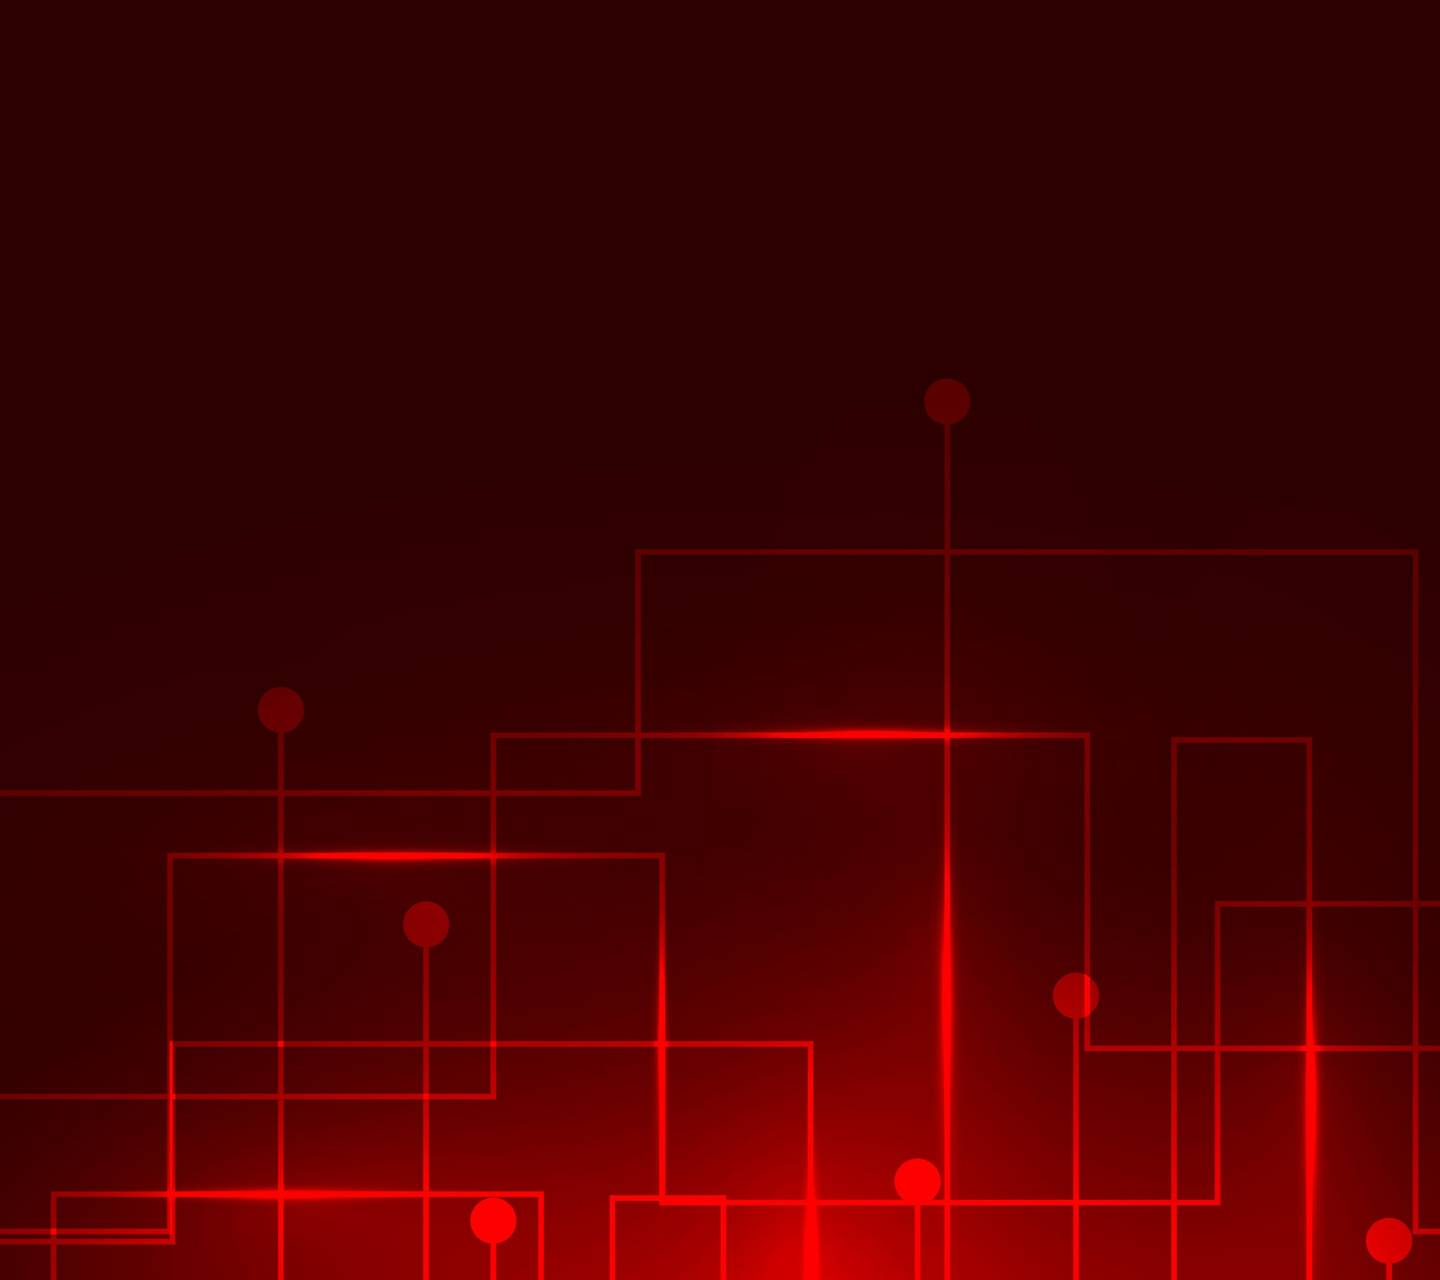 Technology Red